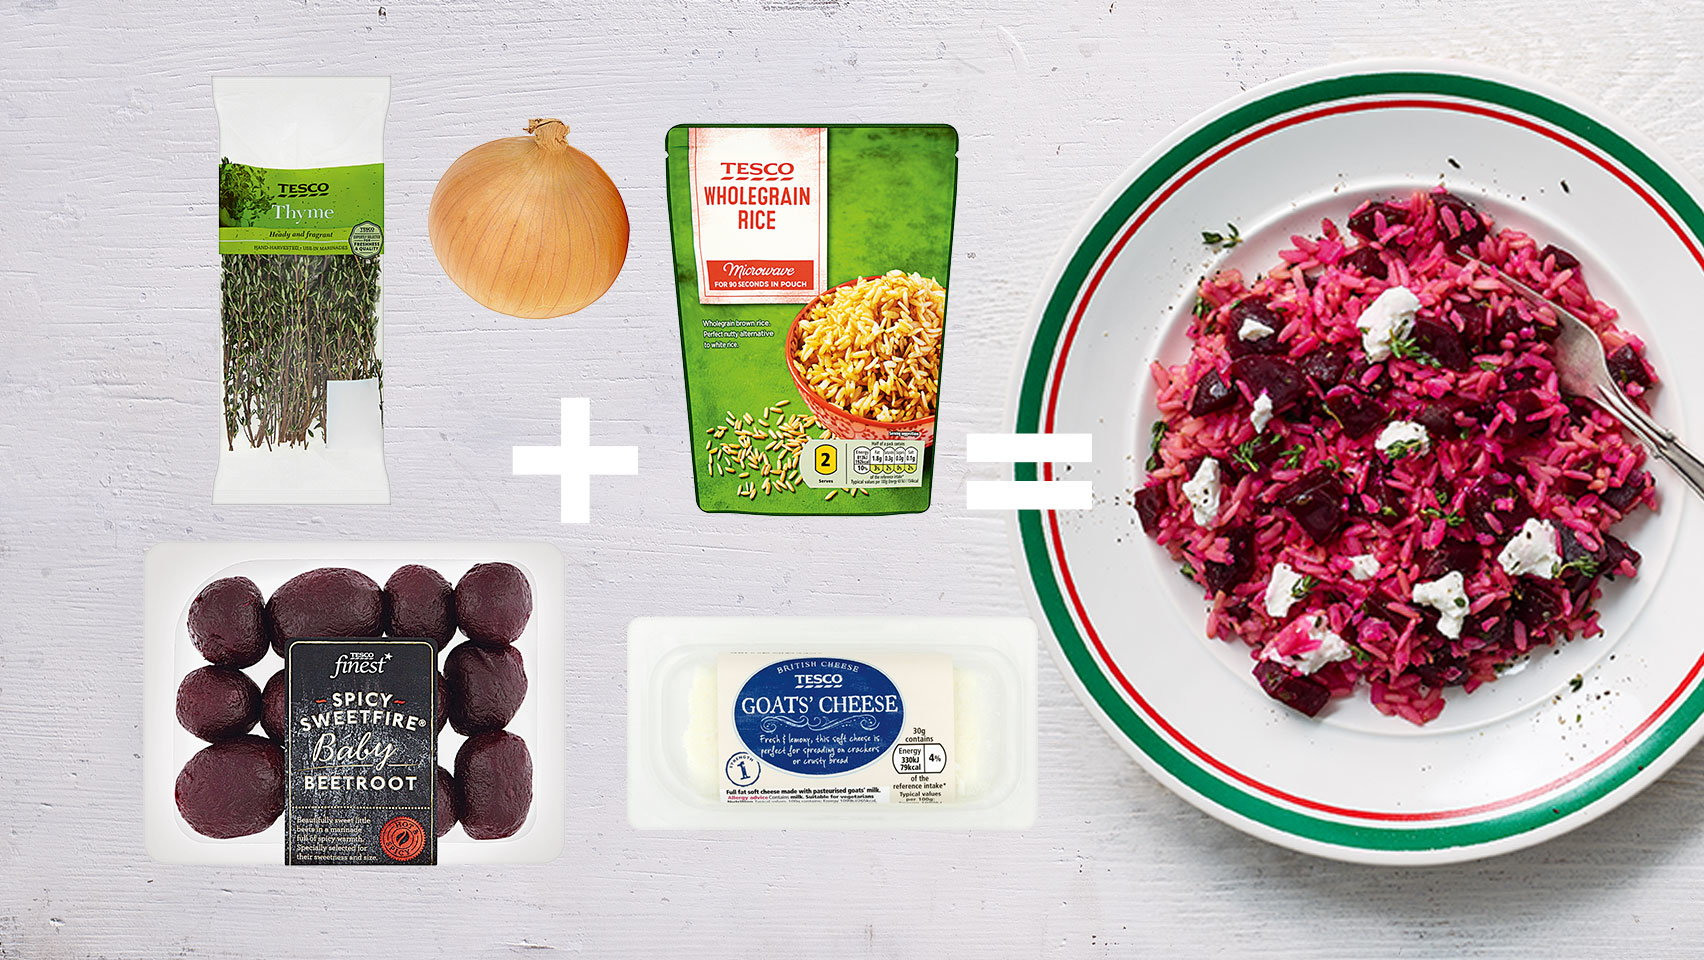 5-ingredient – Cheat's beetroot and goat's cheese risotto (still)